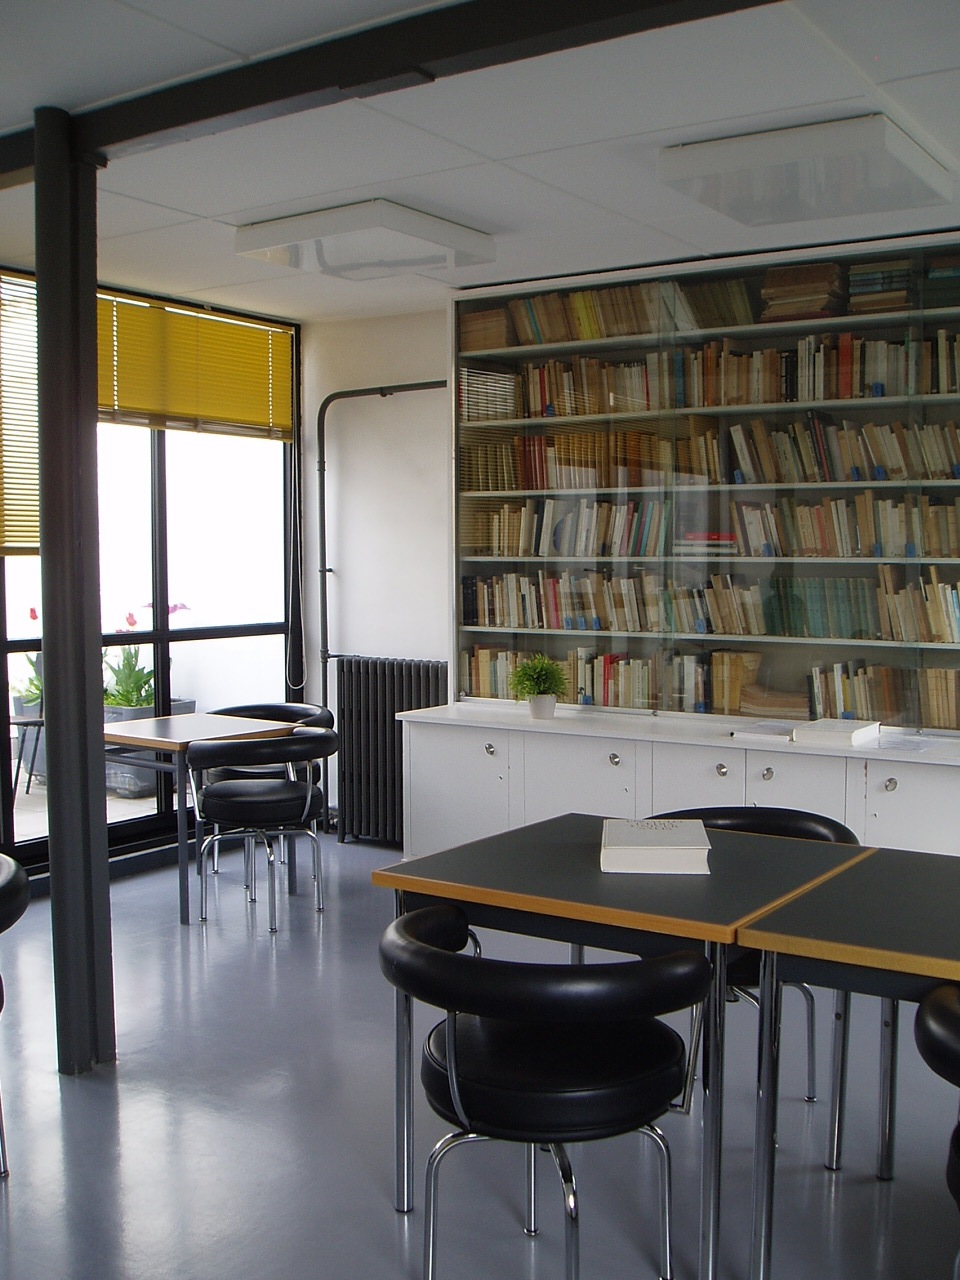 Staying At The Fondation Suisse Fondation Suisse Architecte  # Bibliotheque Mural